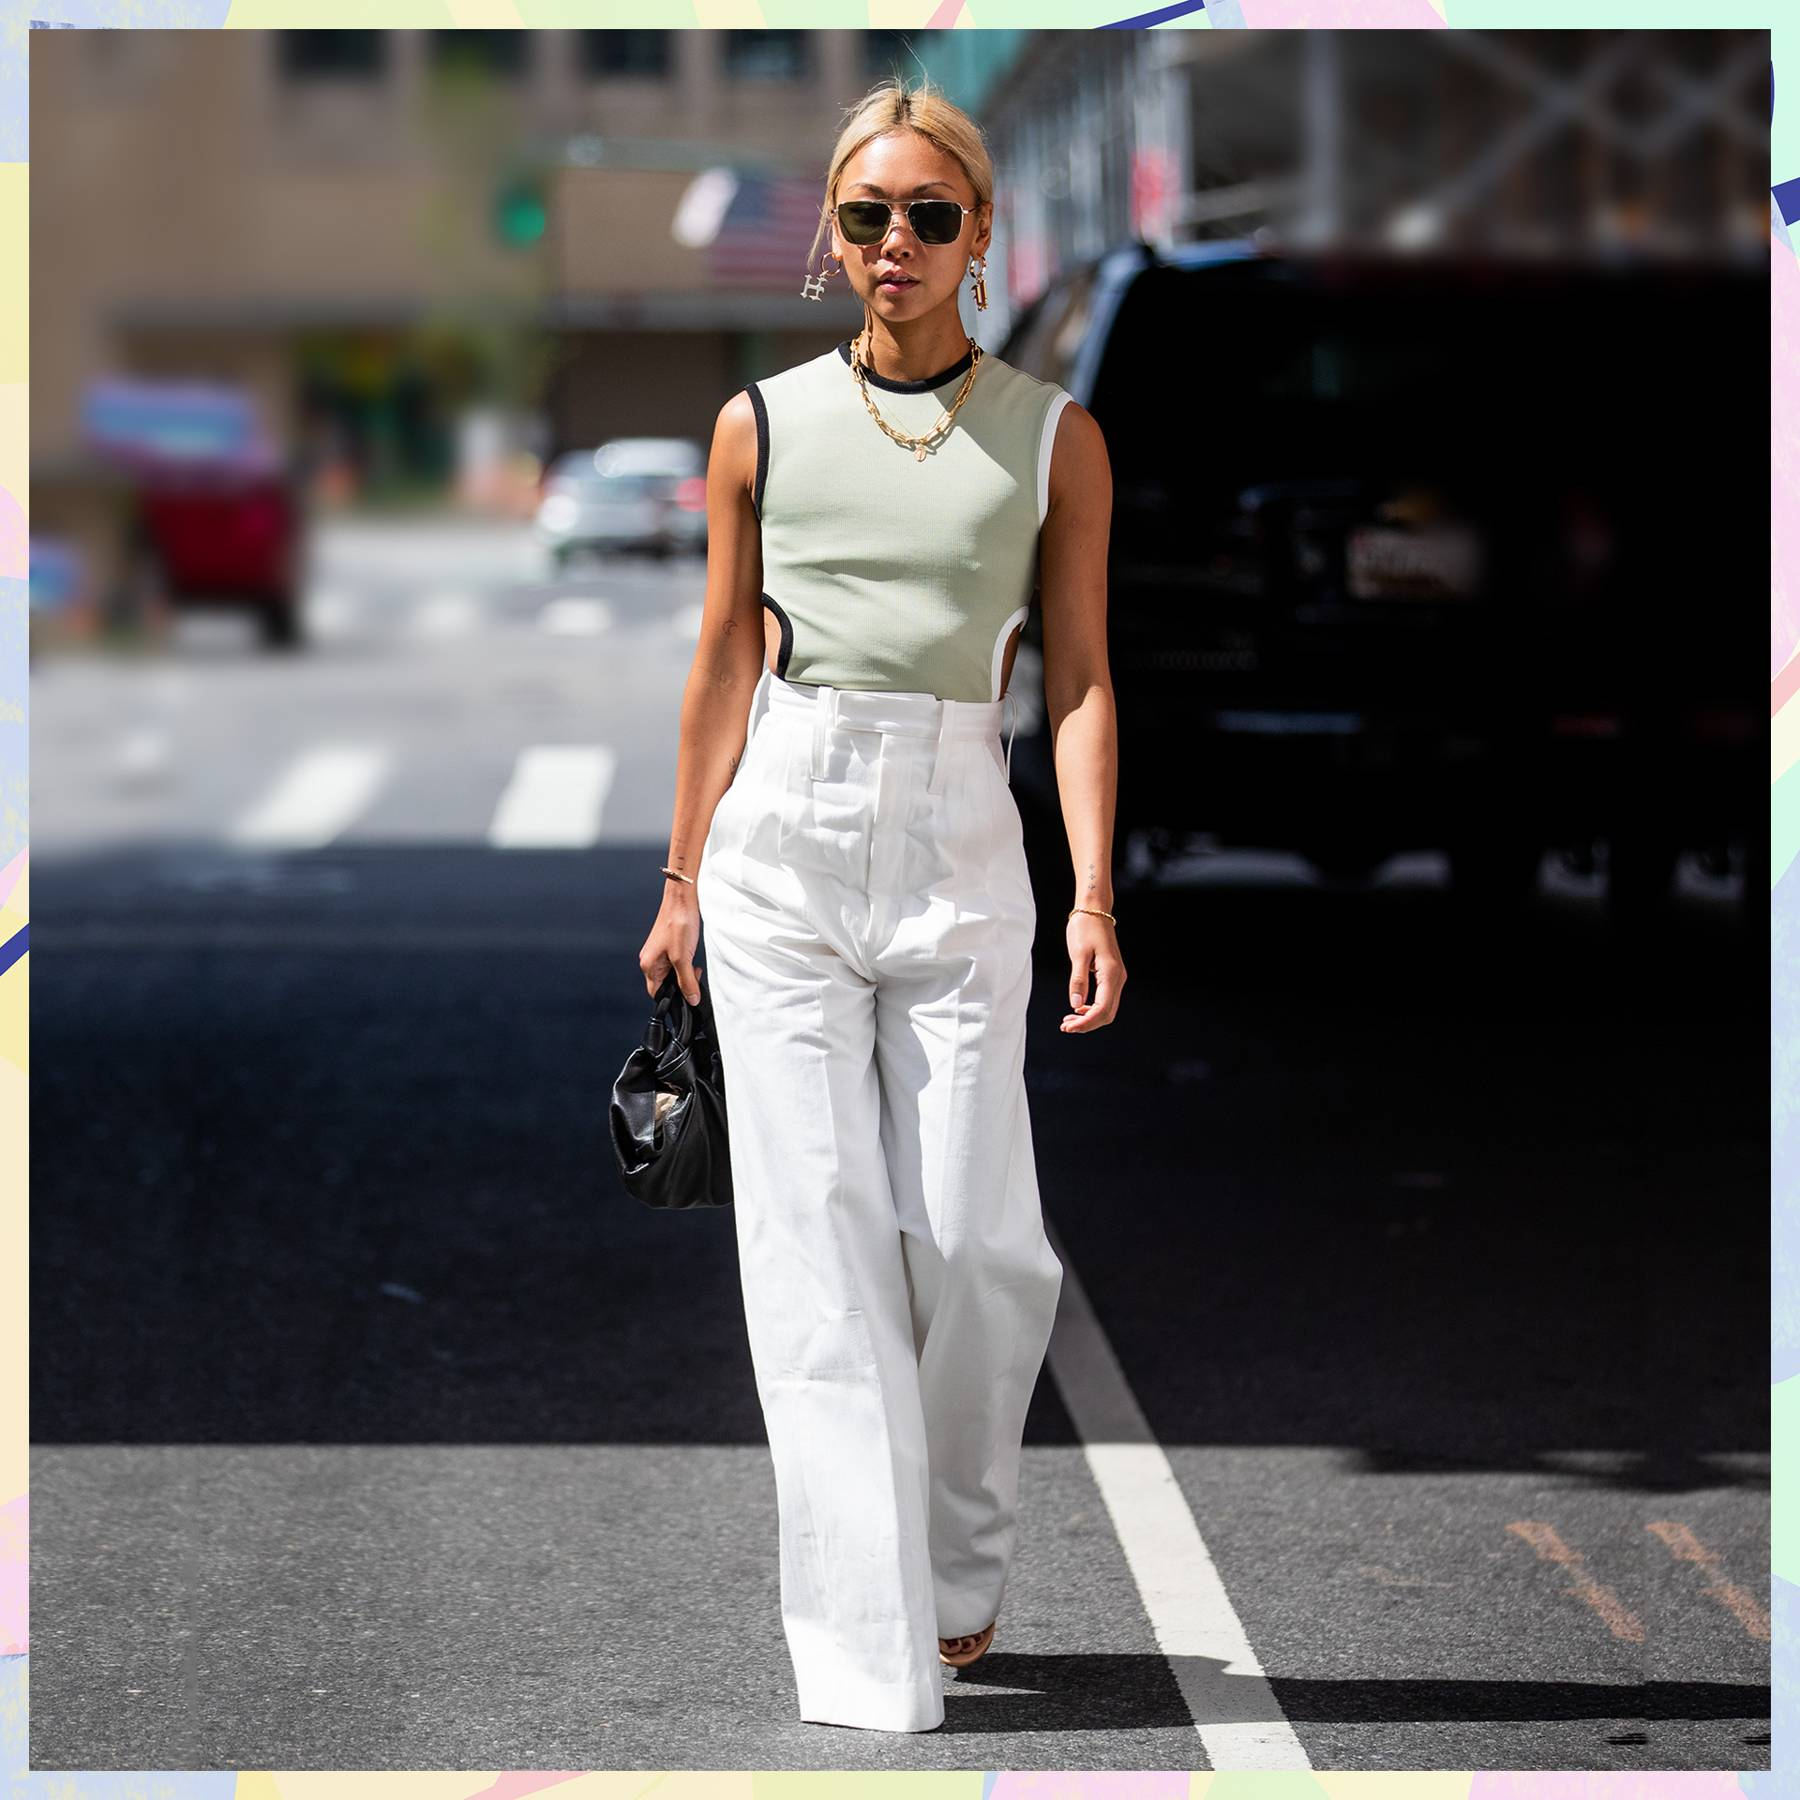 17 of our favourite street style moments from New York Fashion Week (so far!)